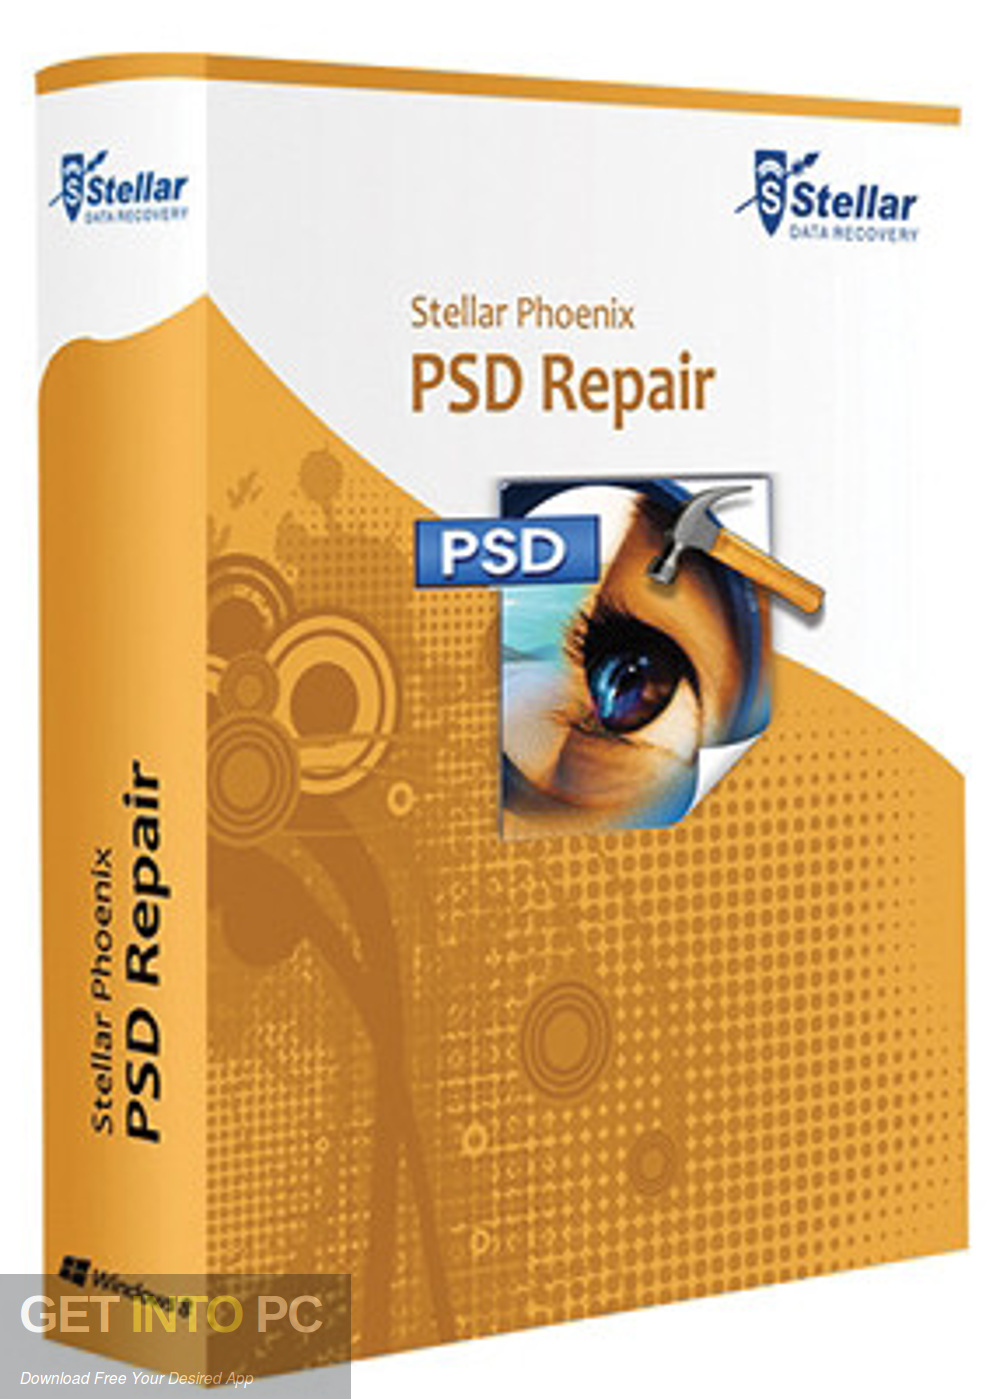 Stellar Phoenix PSD Repair Free Download-GetintoPC.com